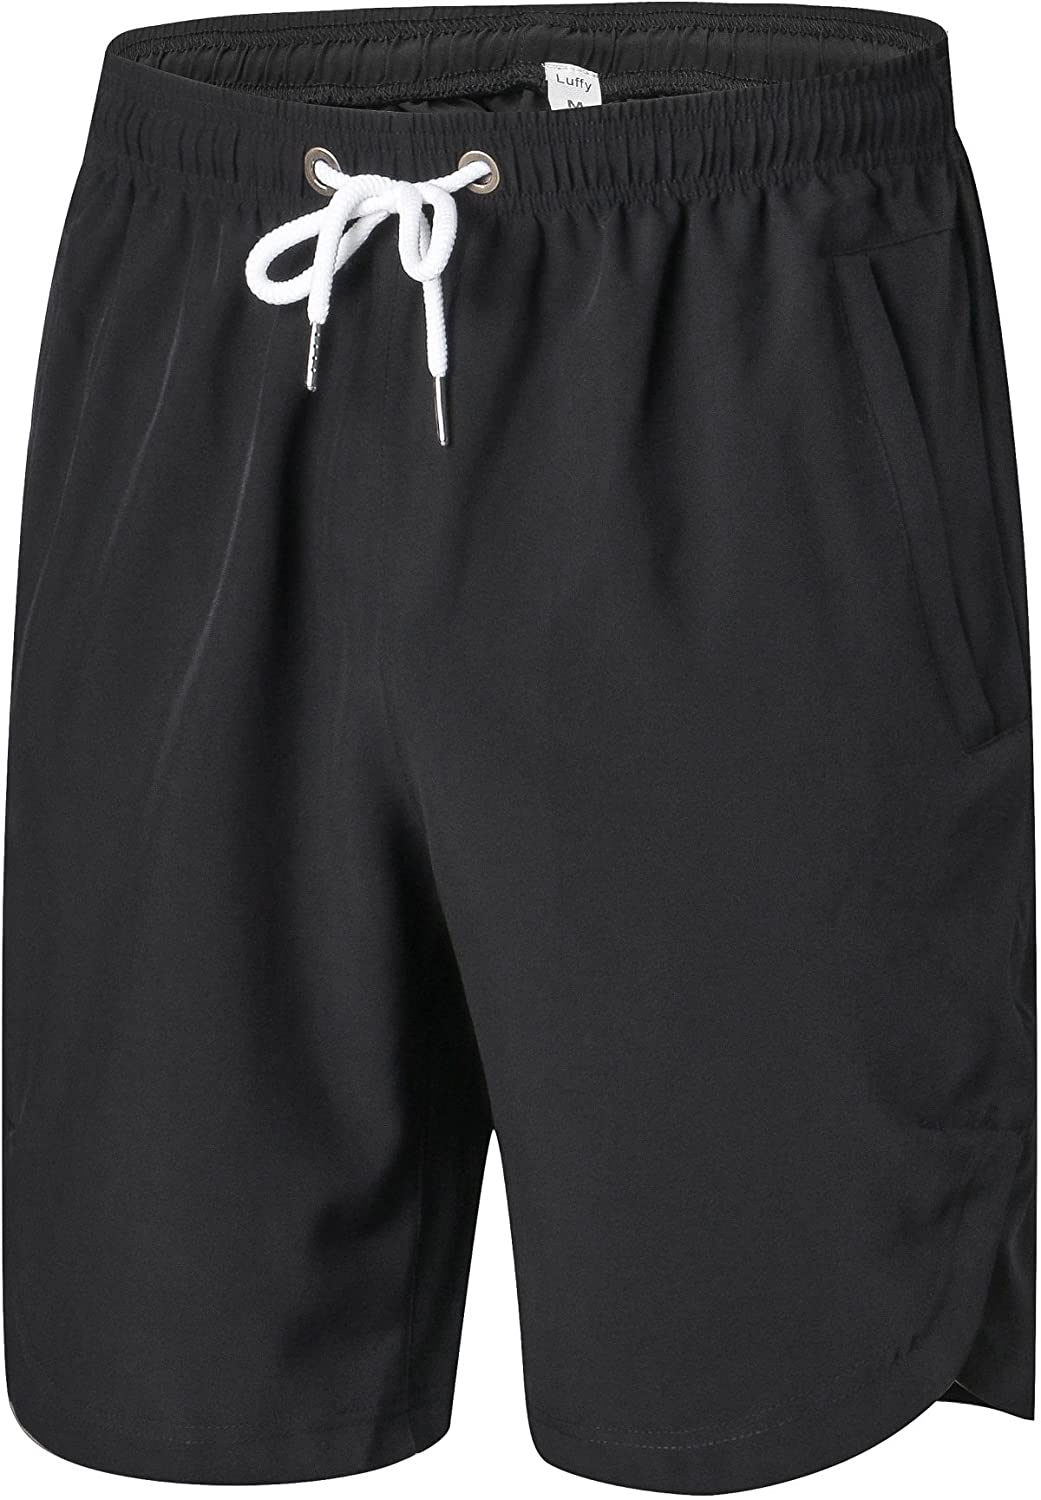 Luffy Mens Quick Dry Athletic Gym Shorts - Stretchable for Bodybuilding Running Workout Active Training Shorts